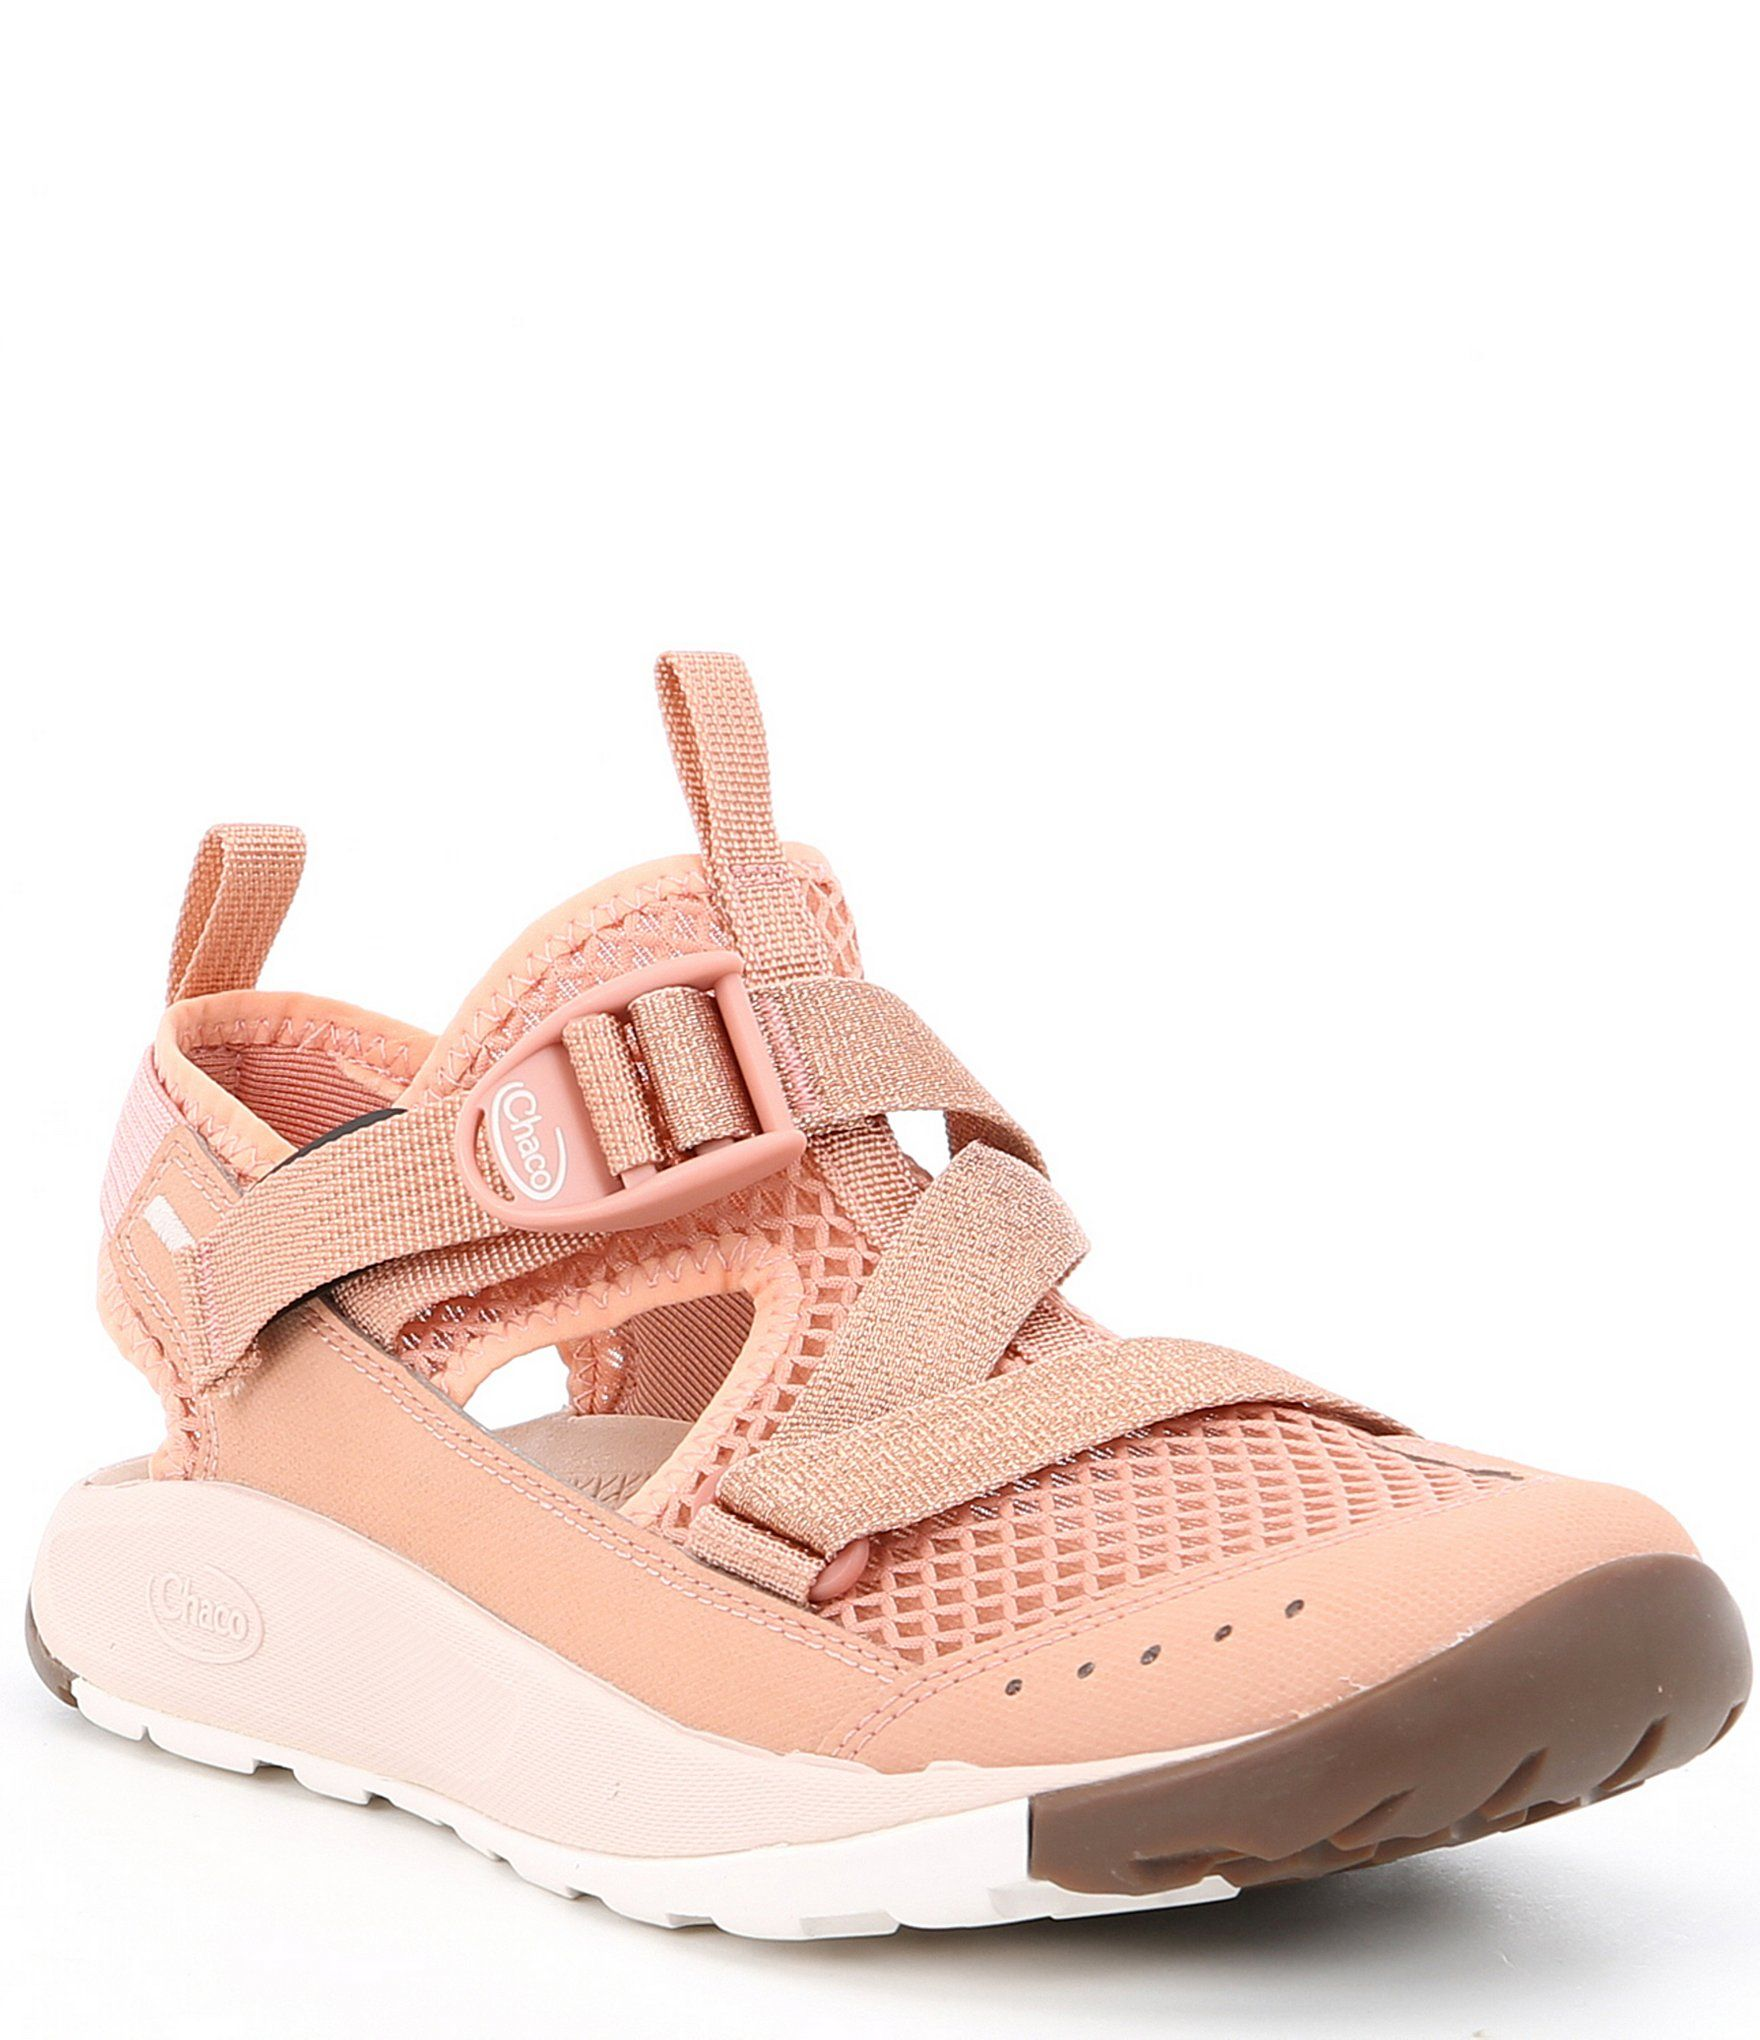 Closed toe sandals, Pink nike shoes